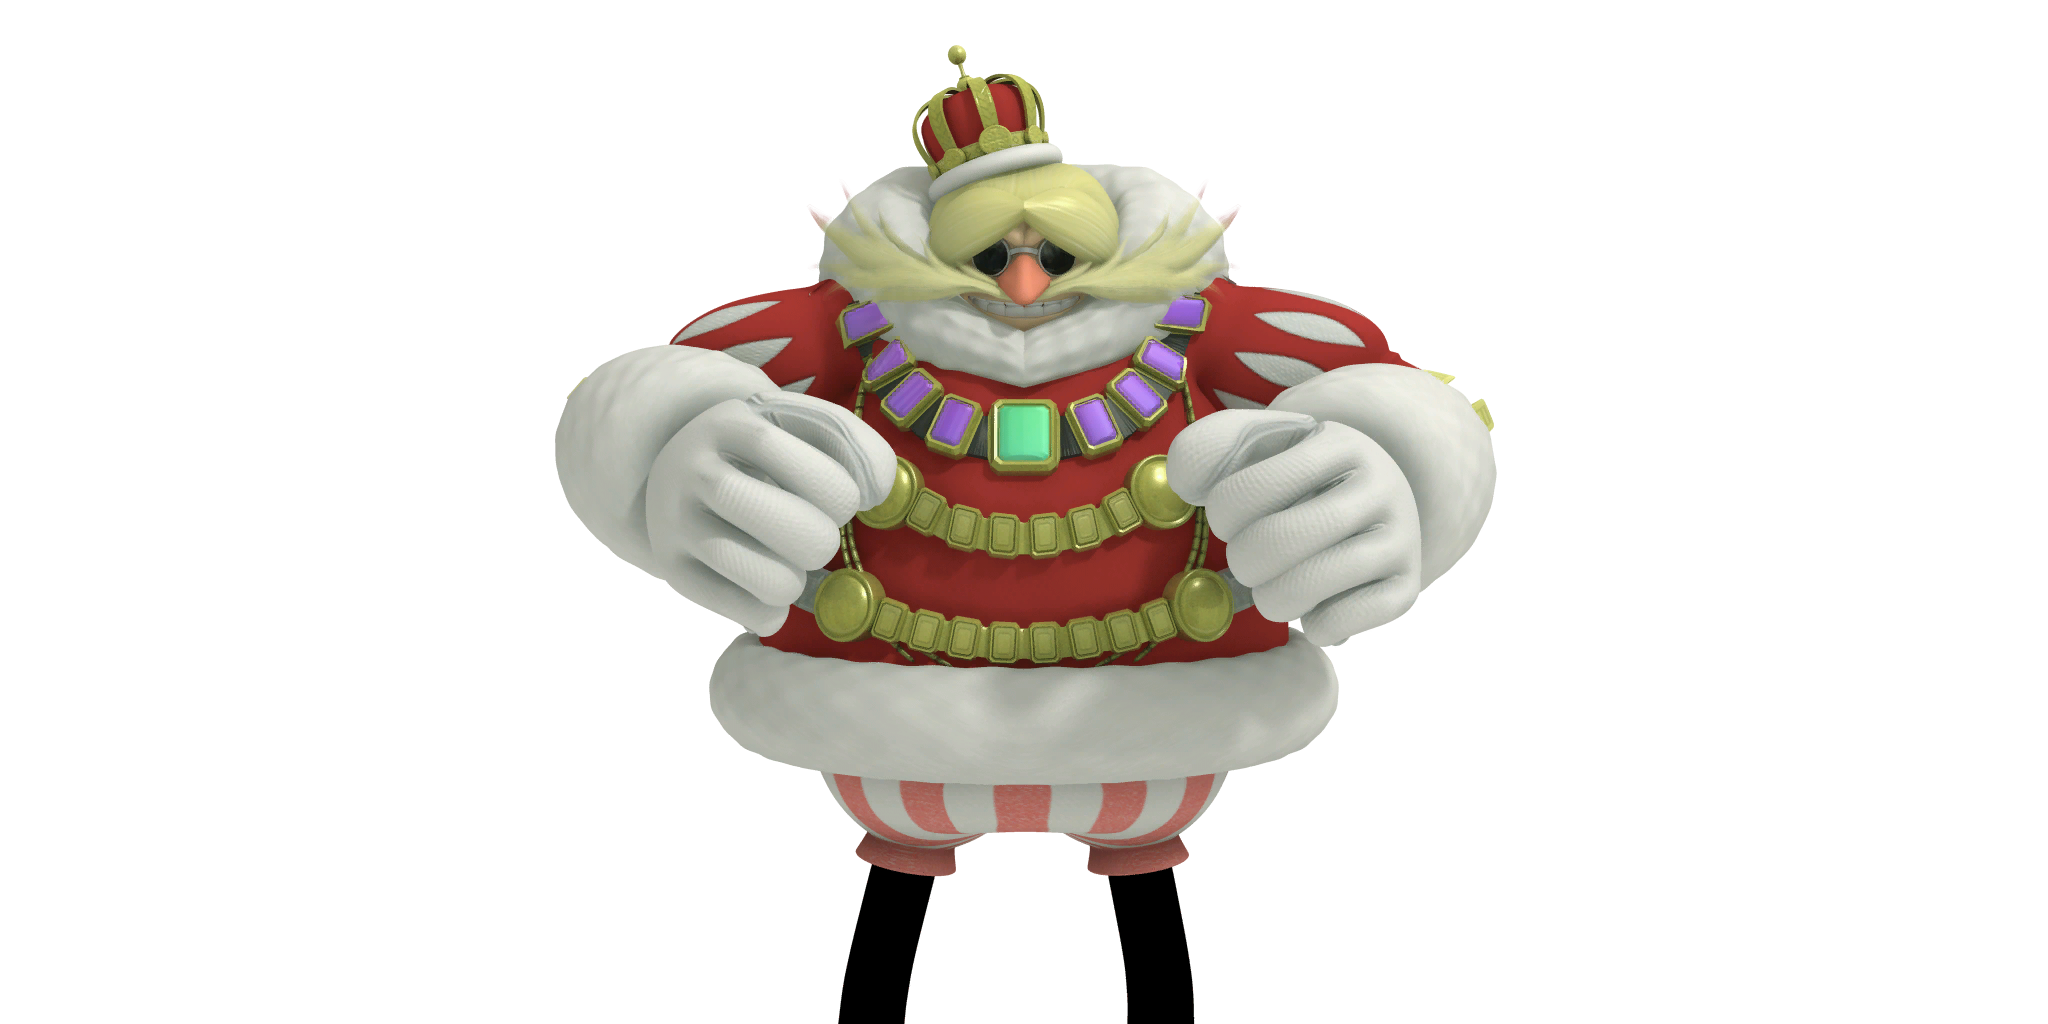 https://media.sonicscanf.org//gallery/dr-ivo-eggman-robotnik/sonic-free-riders-king-doc-8.png